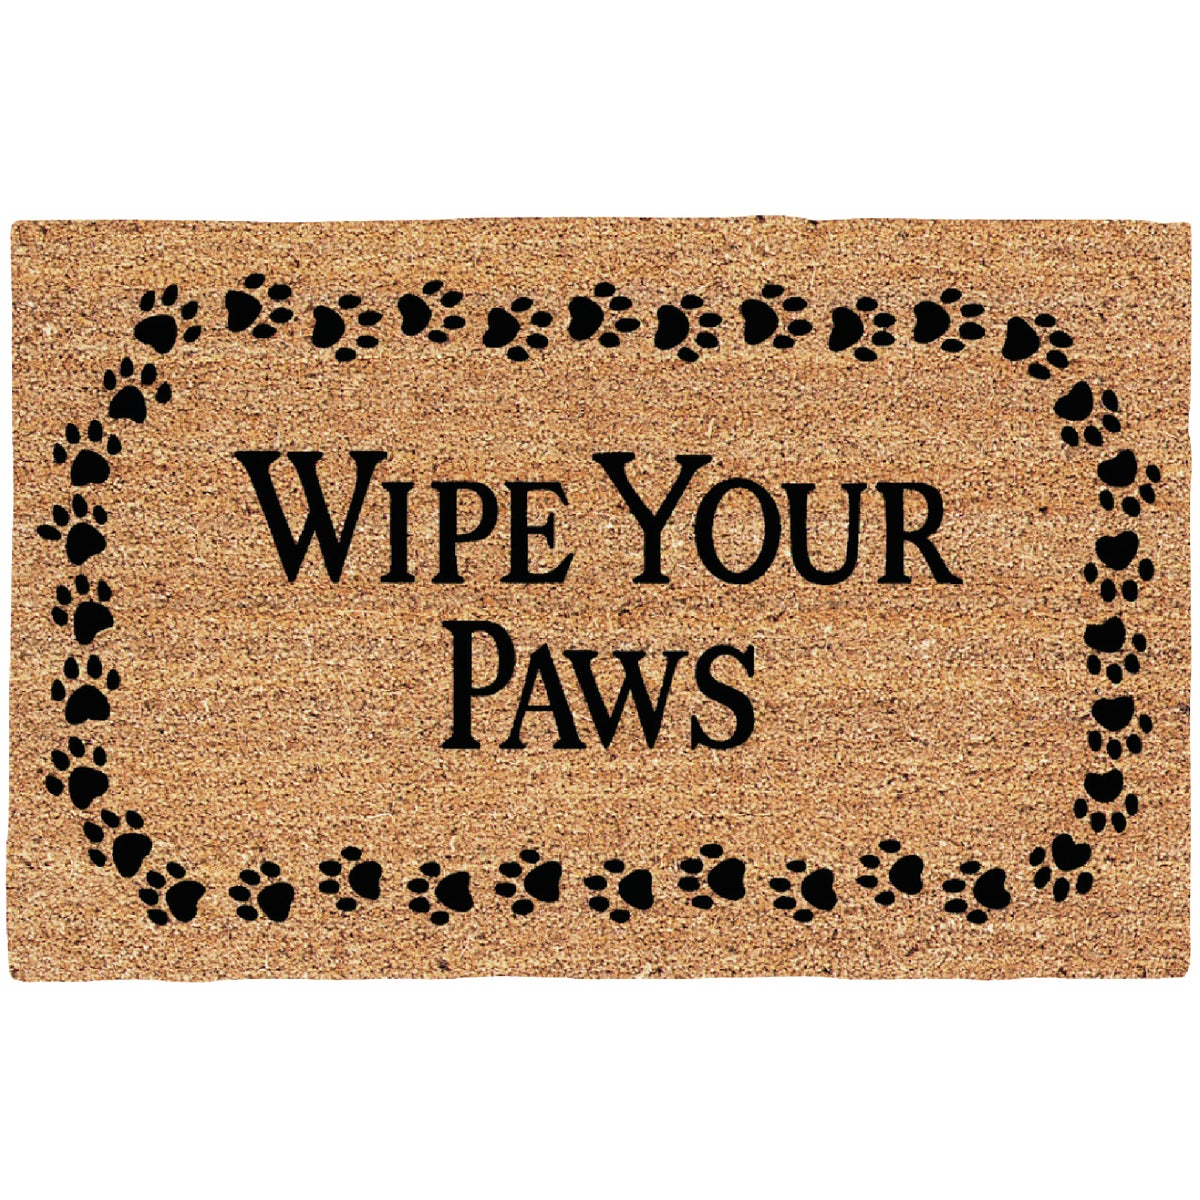 WIPE YOUR PAWS DOORMAT - 31801 by Uscoa Llc